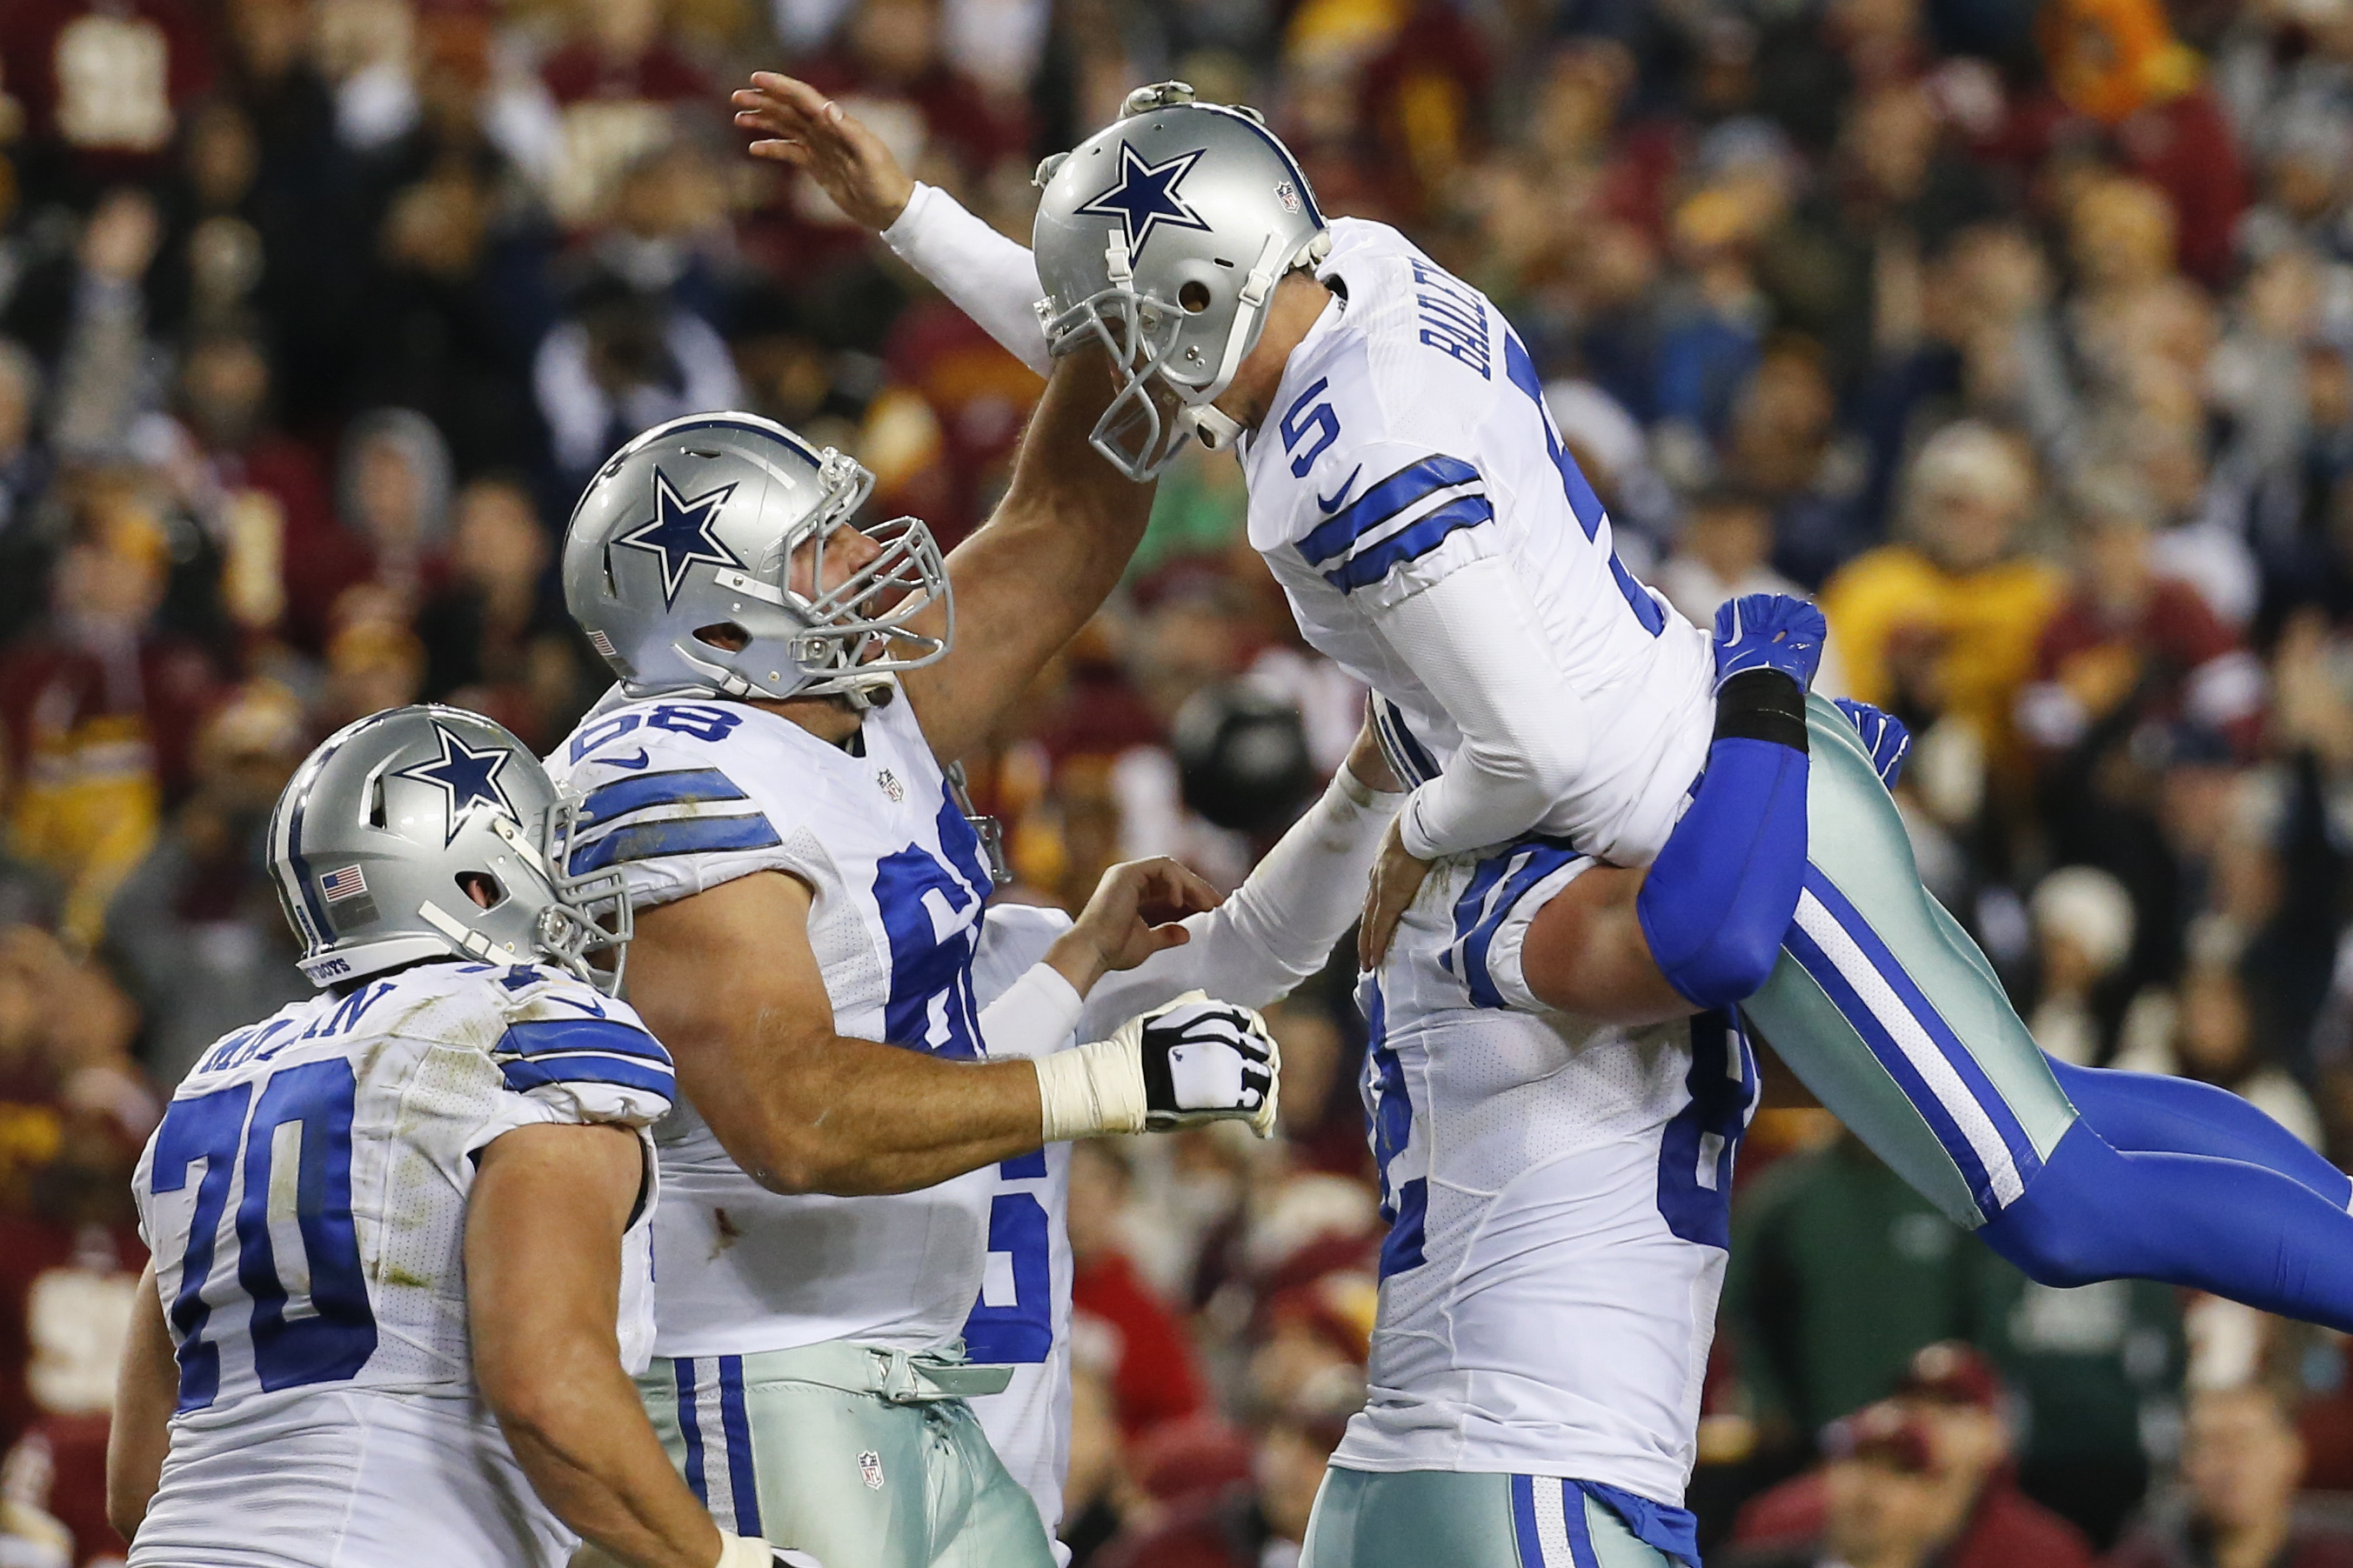 Cowboys Blog - 5 Thoughts On The Redskins Following Film Review